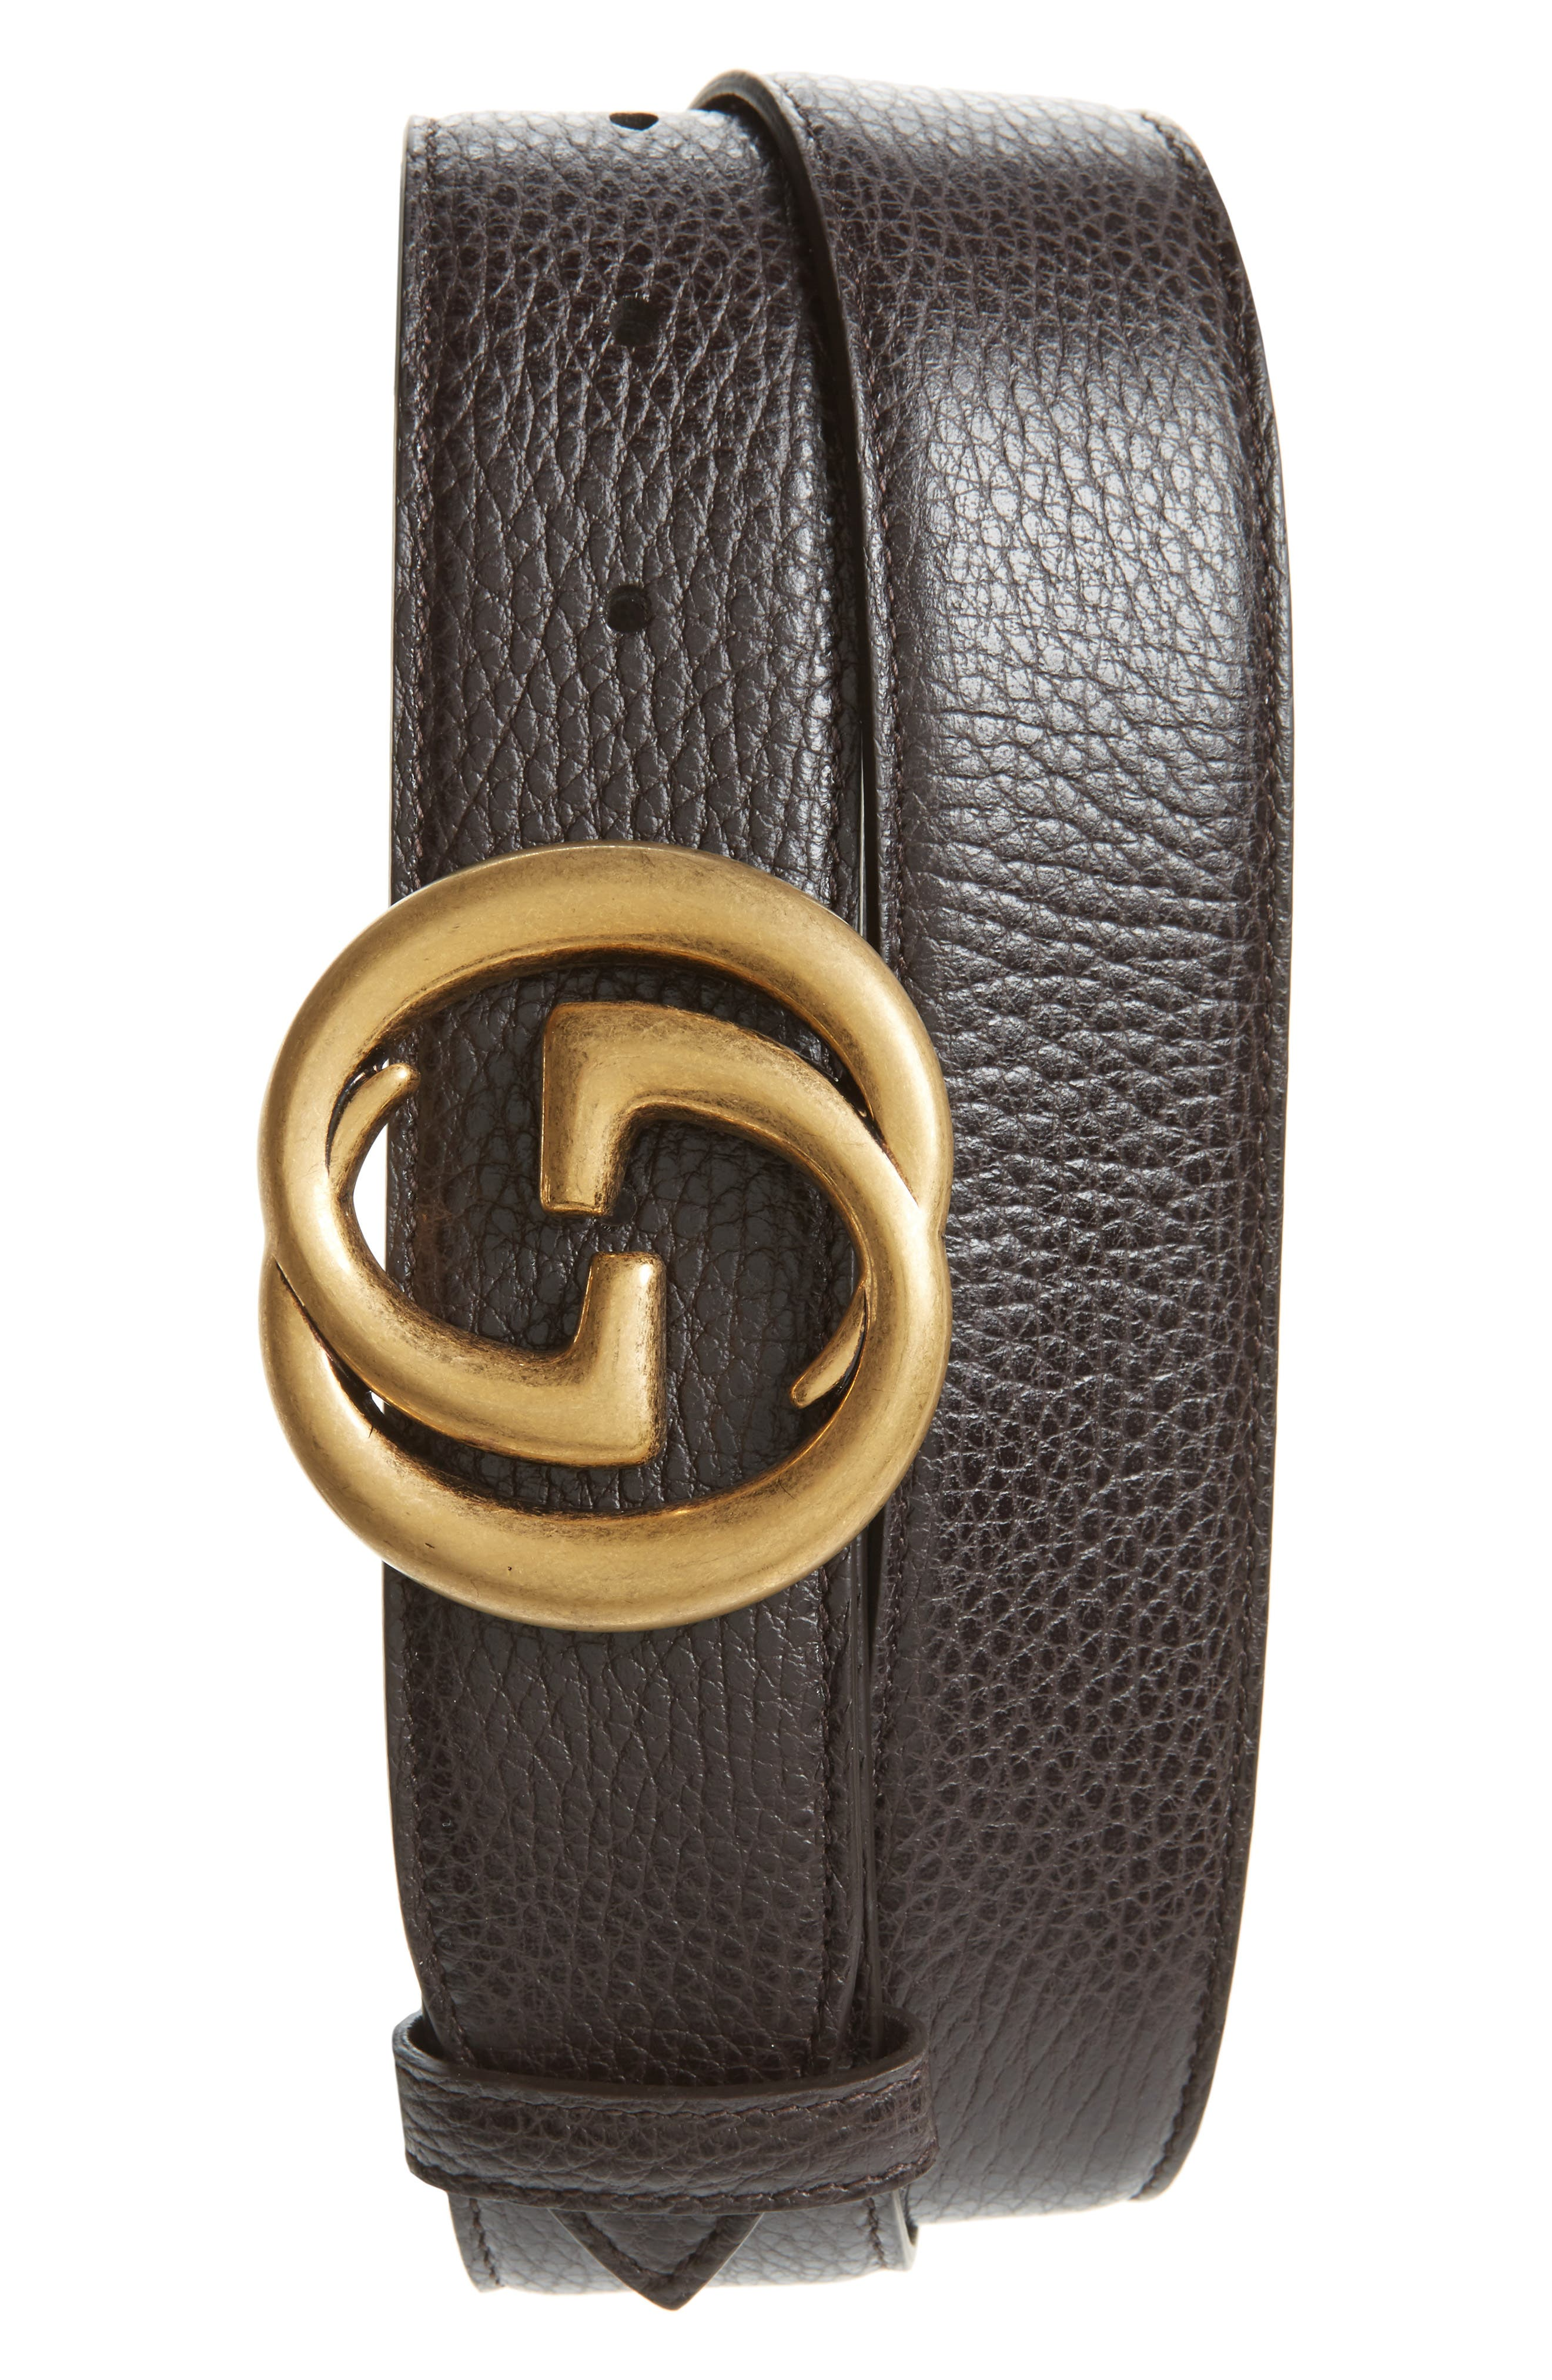 Gucci Interlocking-G Calfskin Leather Belt